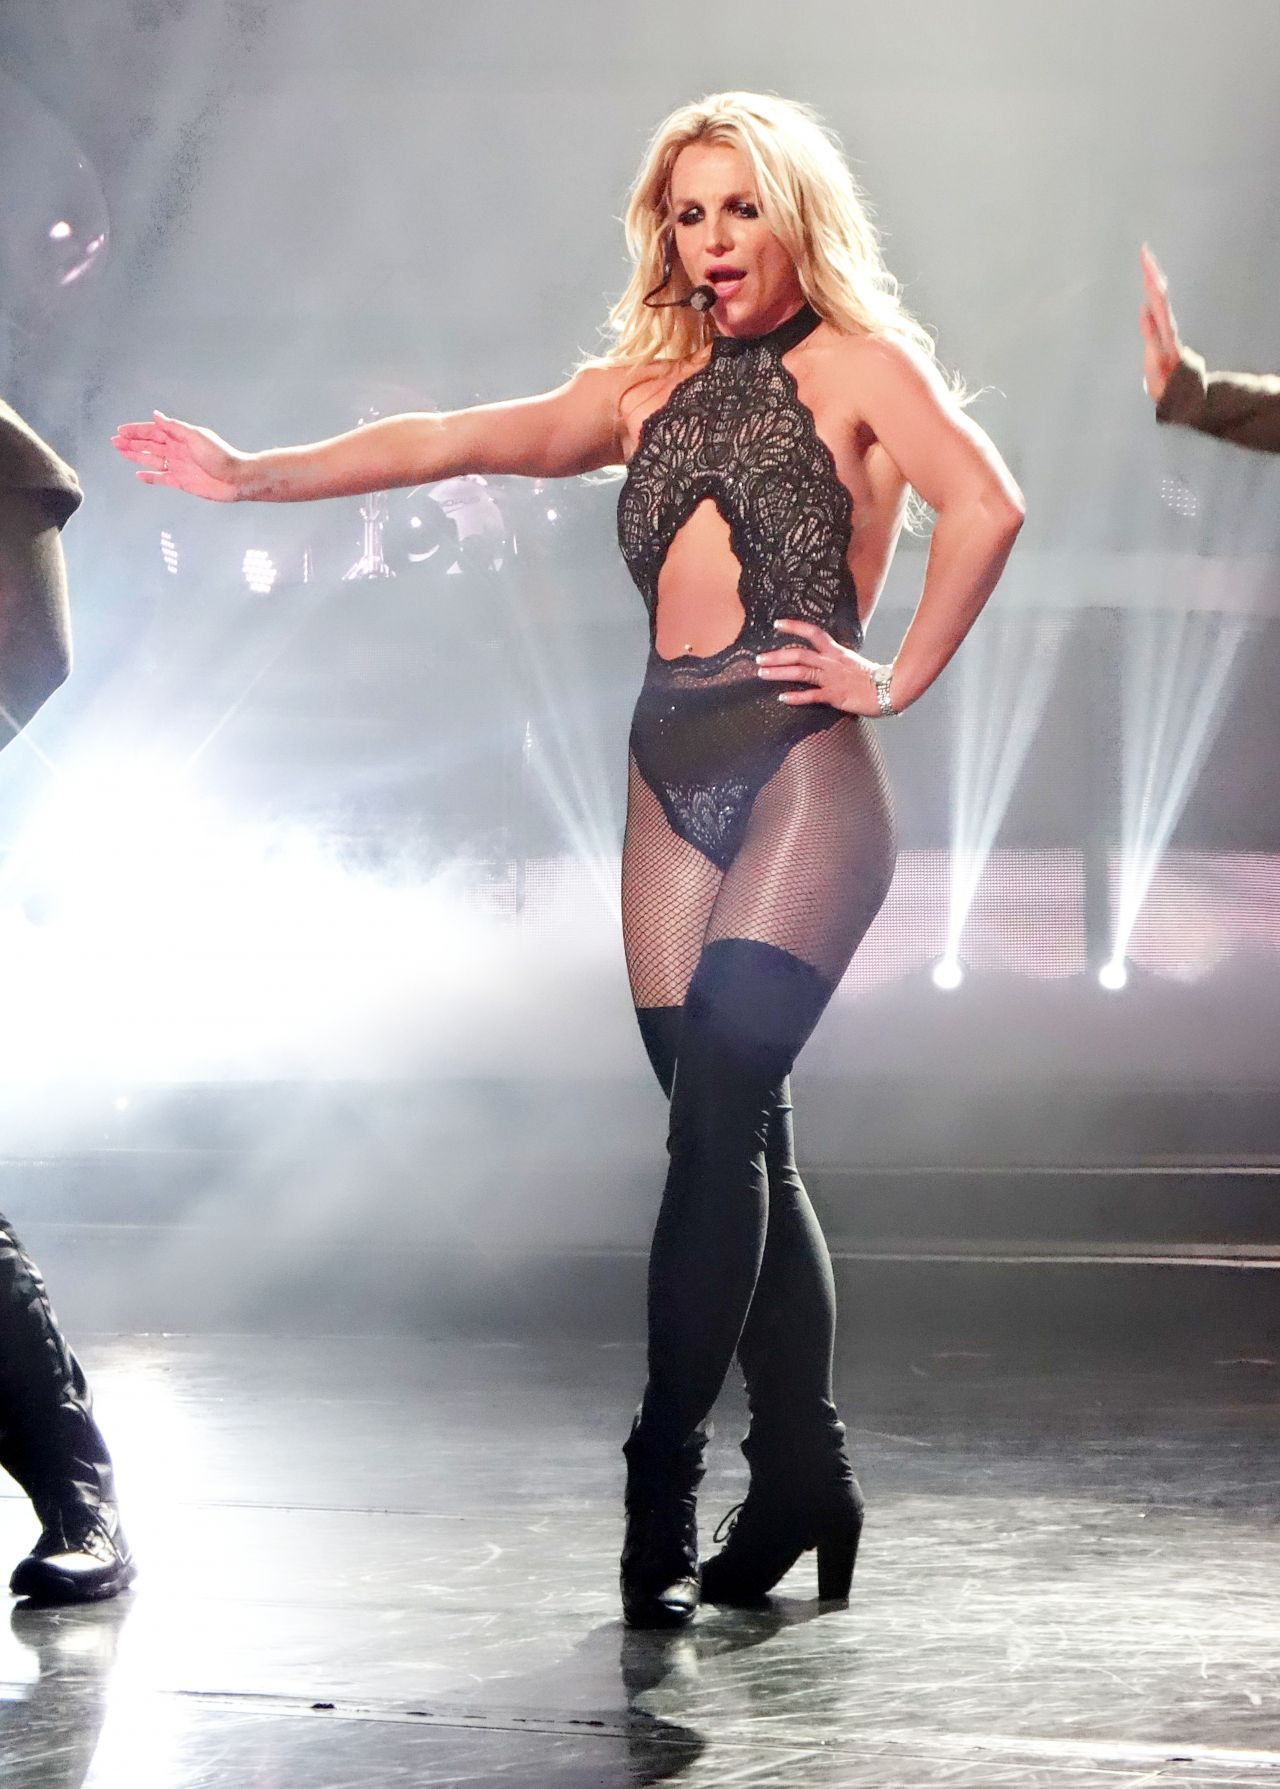 Discussion on this topic: Naomi campbell style tribeca in ny, britney-spears-performs-at-axis-in-las/